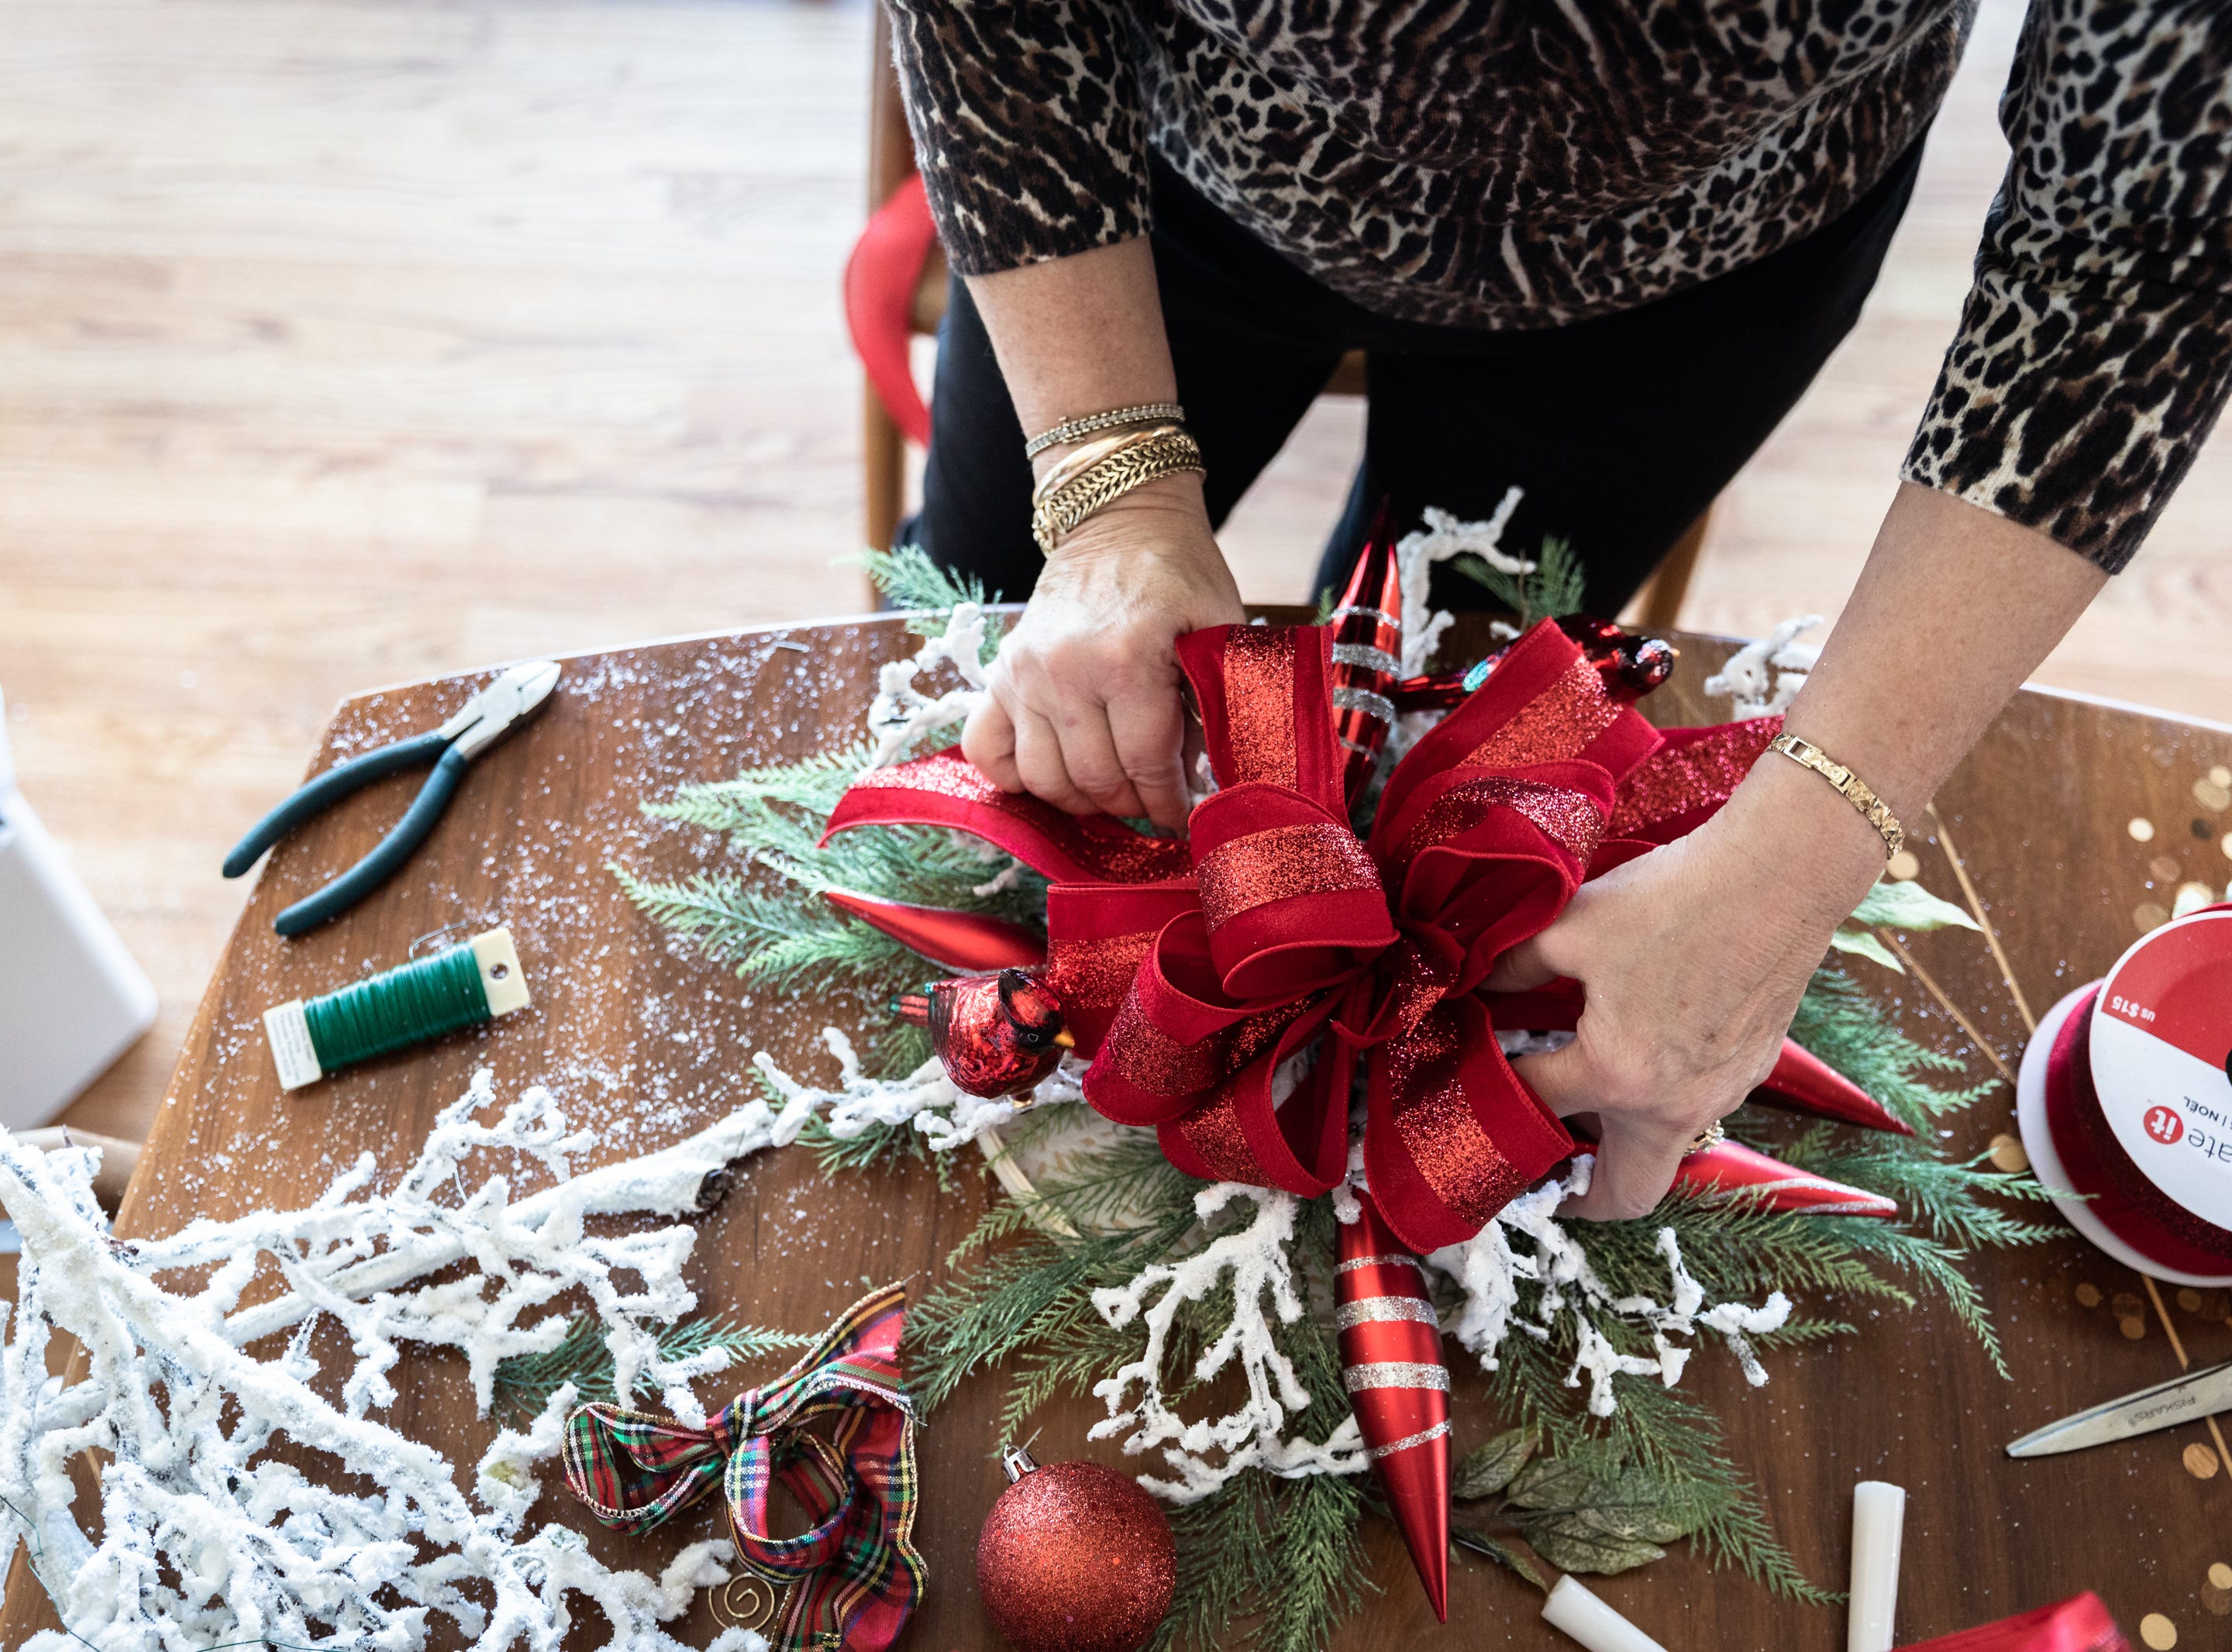 June Ray, of Waynesville, a member of the Governor's Western Residence Board of Directors, assembles a wreath for the holidays at the residence on Patton Mountain Road in Asheville, Nov. 29, 2018.